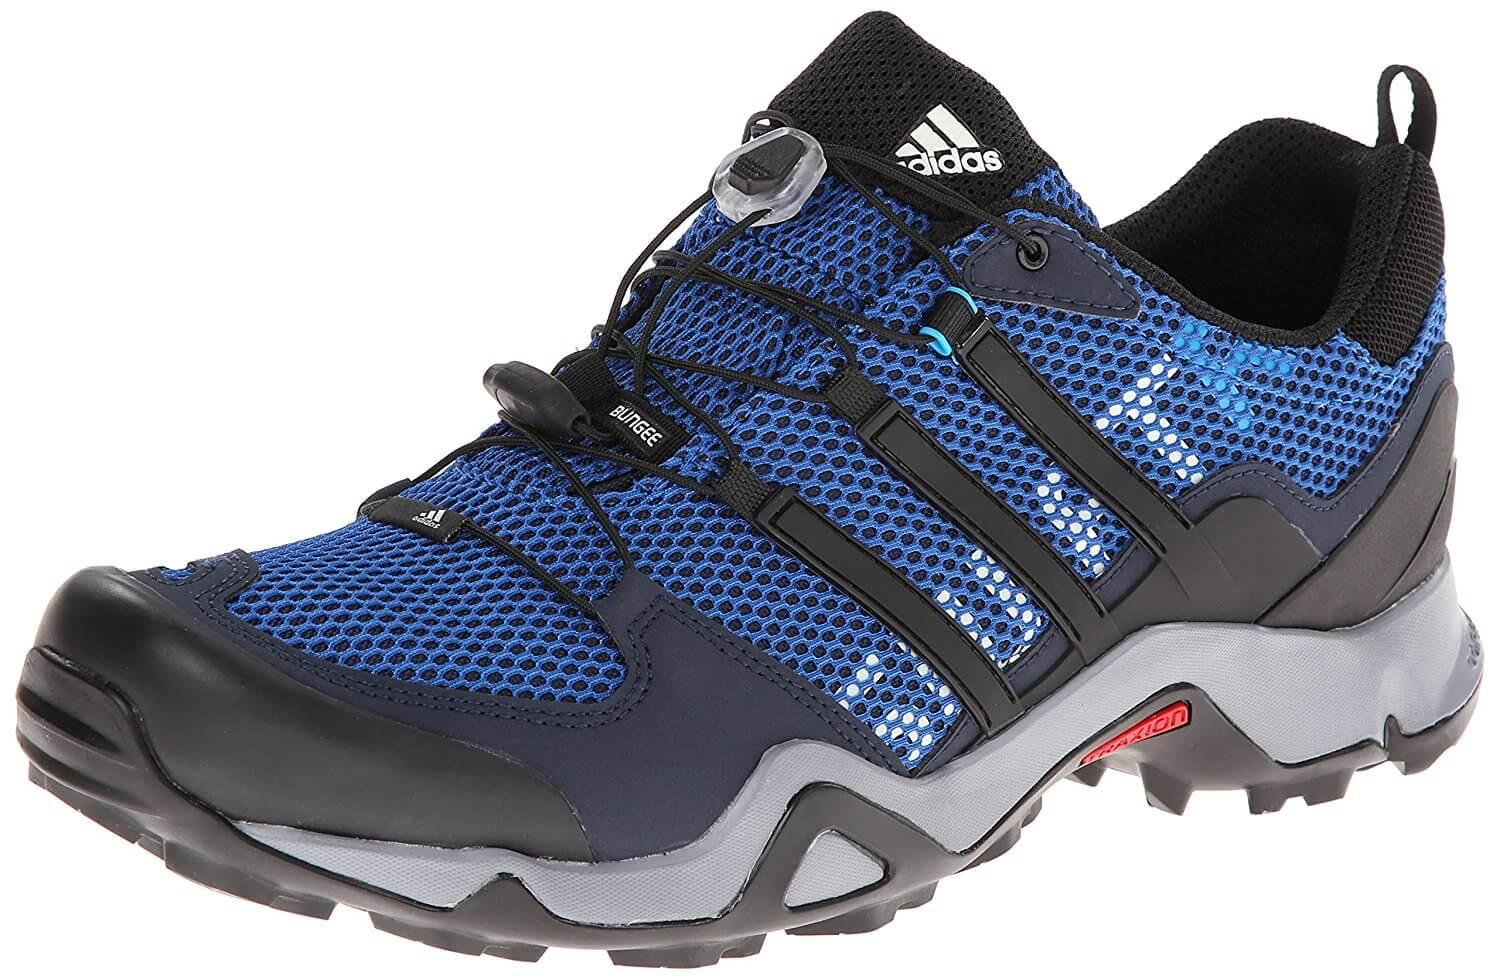 1ca851f20 The Adidas Terrex Swift R GTX is an impressive and highly capable trail  runner.